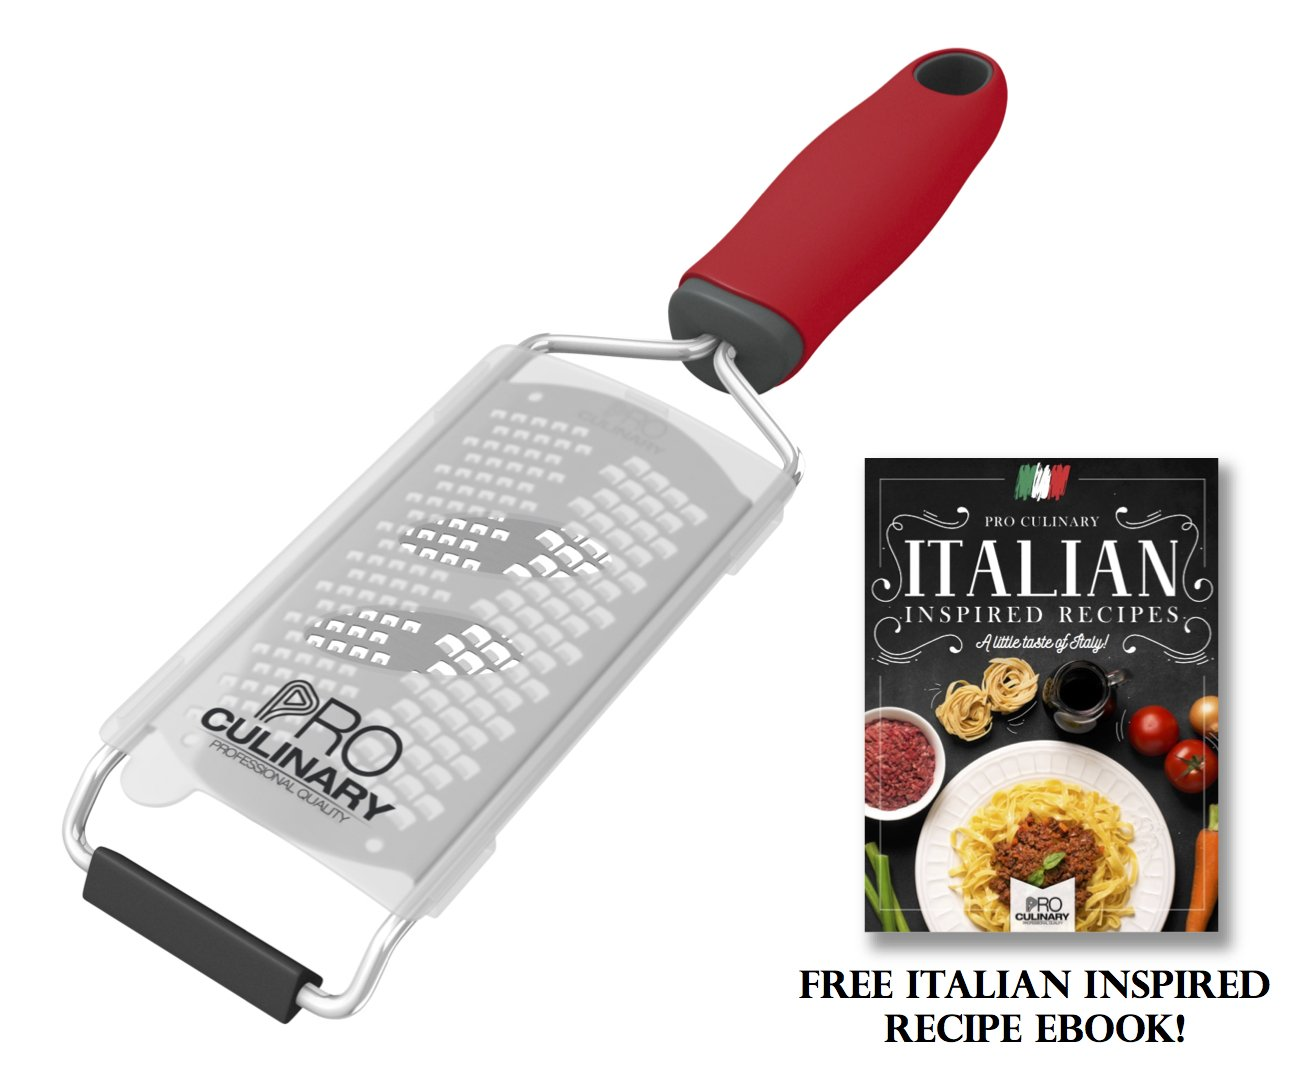 Pro Culinary Zester Grater - Professional Hand Held Stainless Steel Fine Grater With Silicone Handle And Blade Protector - Dishwasher Safe - Red - Free Ebook